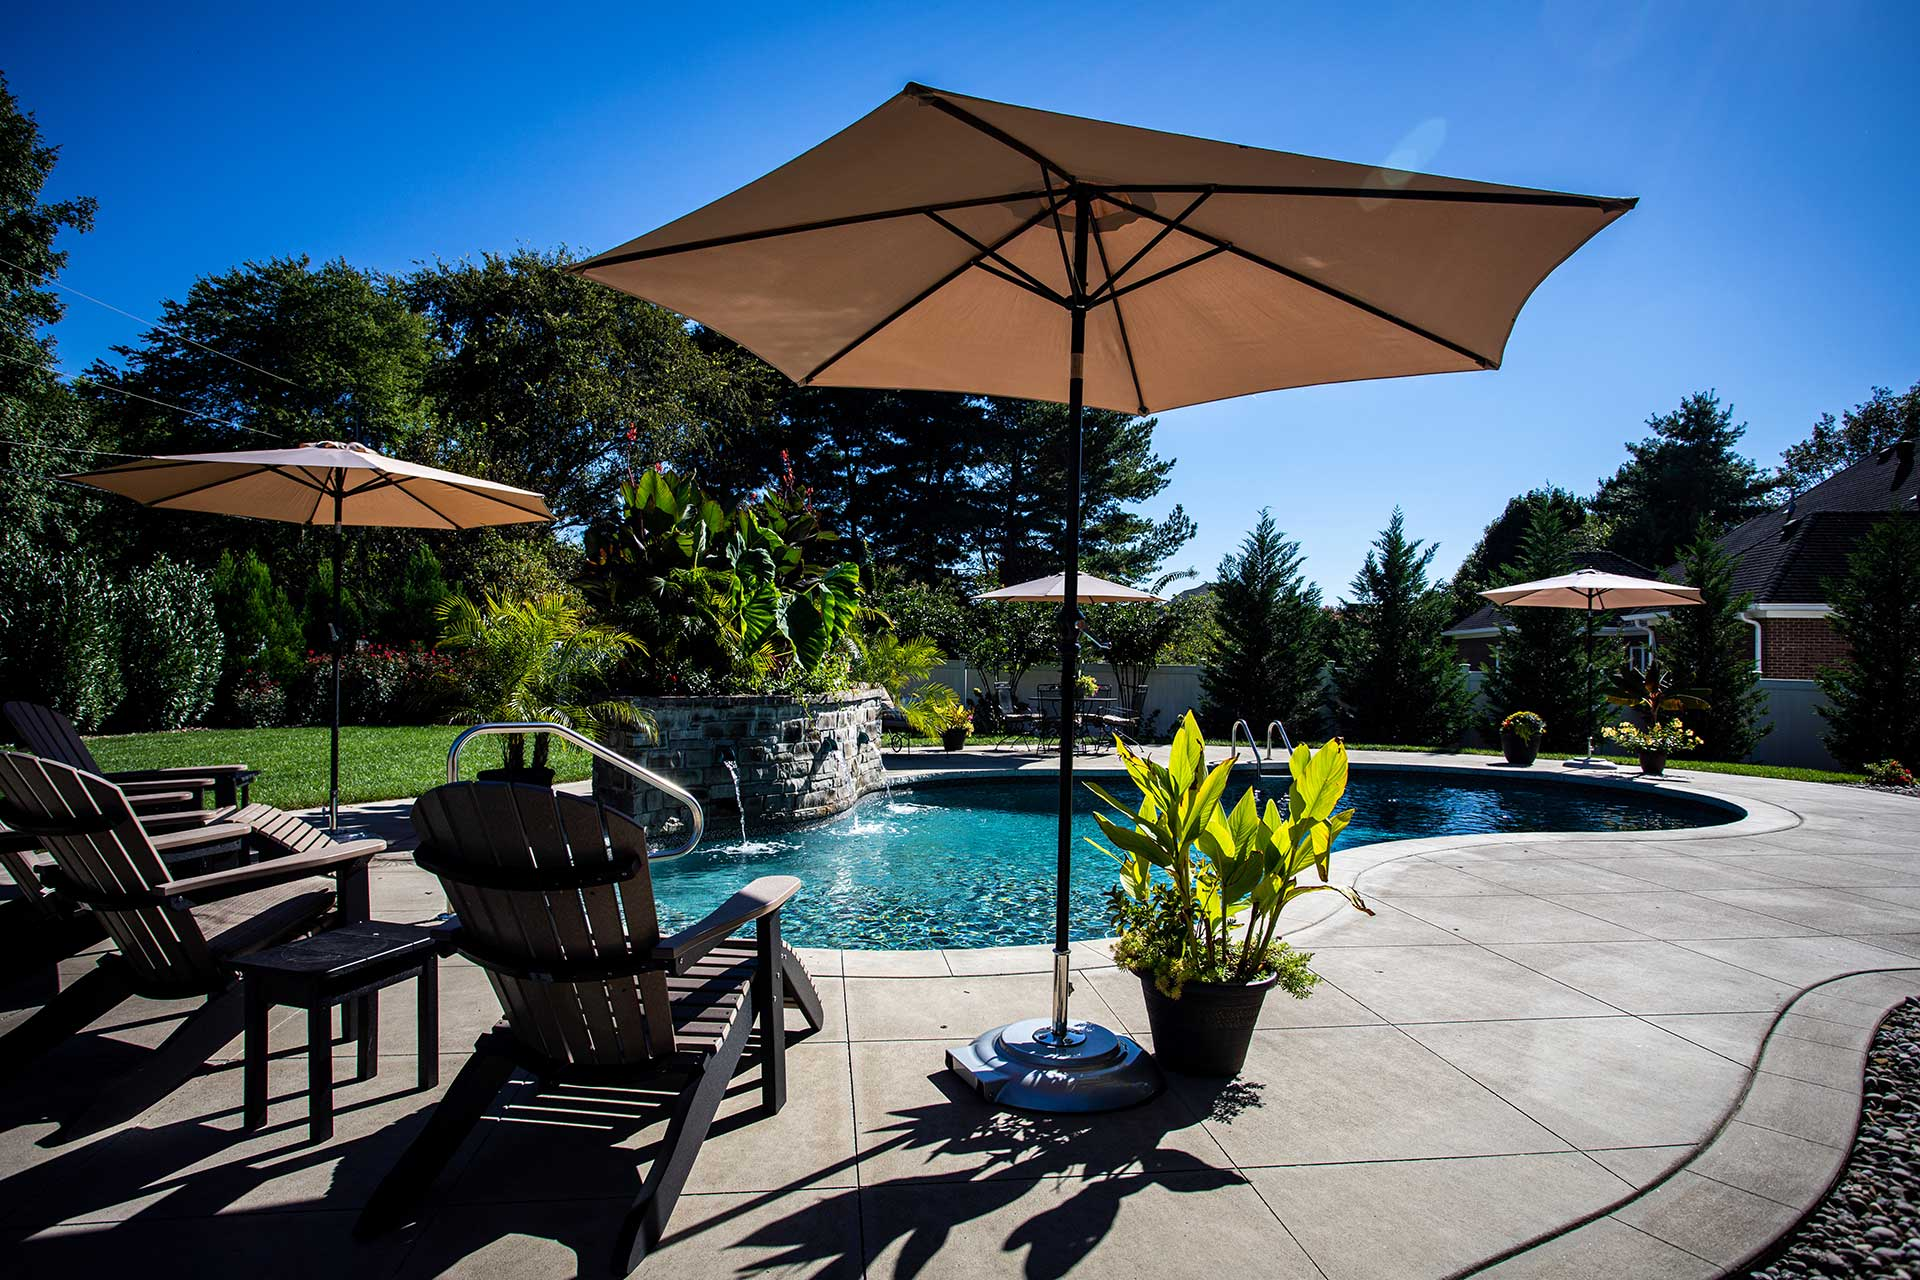 In Ground Pool with Umbrellas and Plants